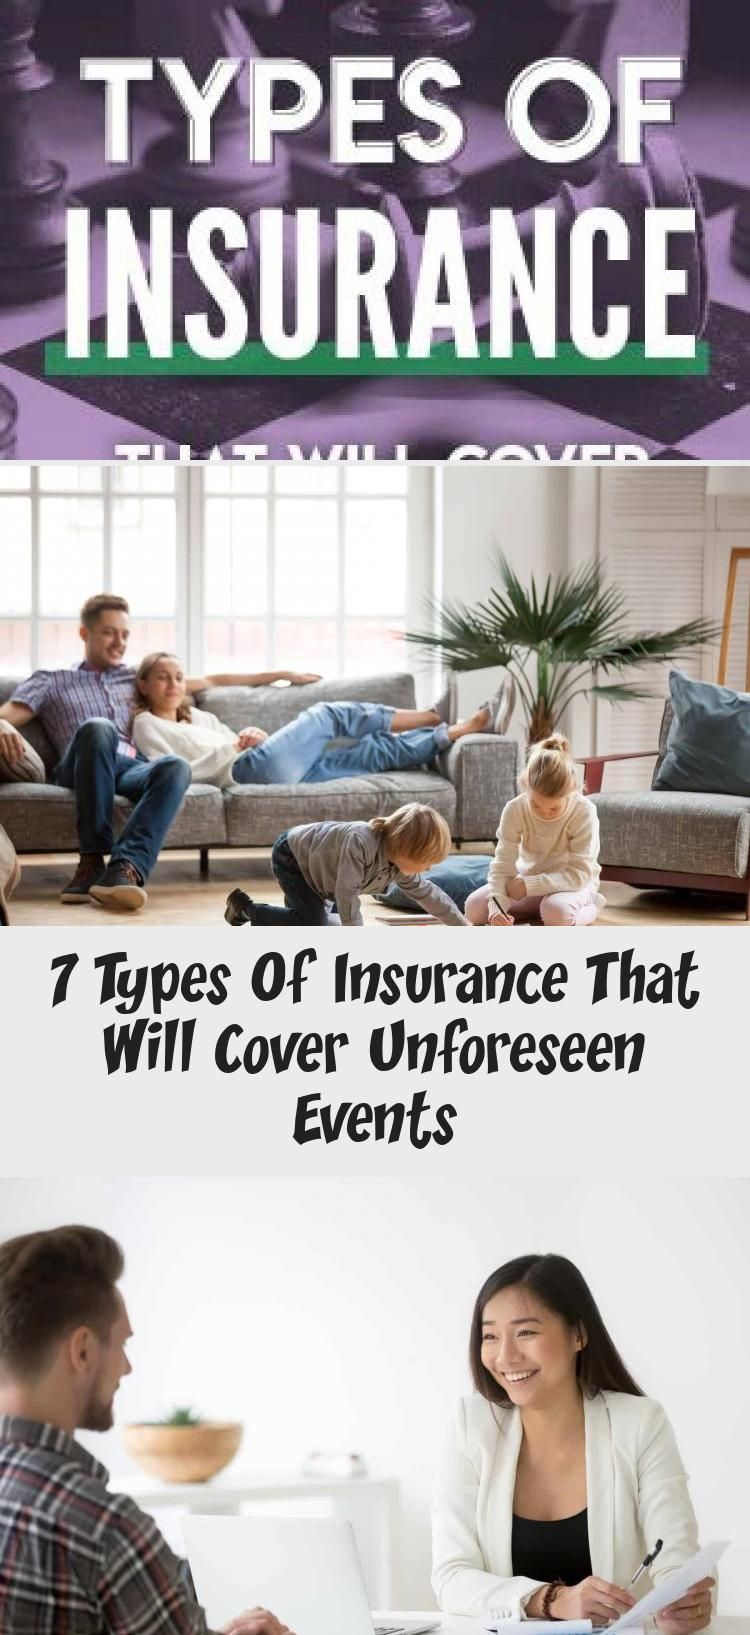 7 types of insurance that will cover unforeseen events in